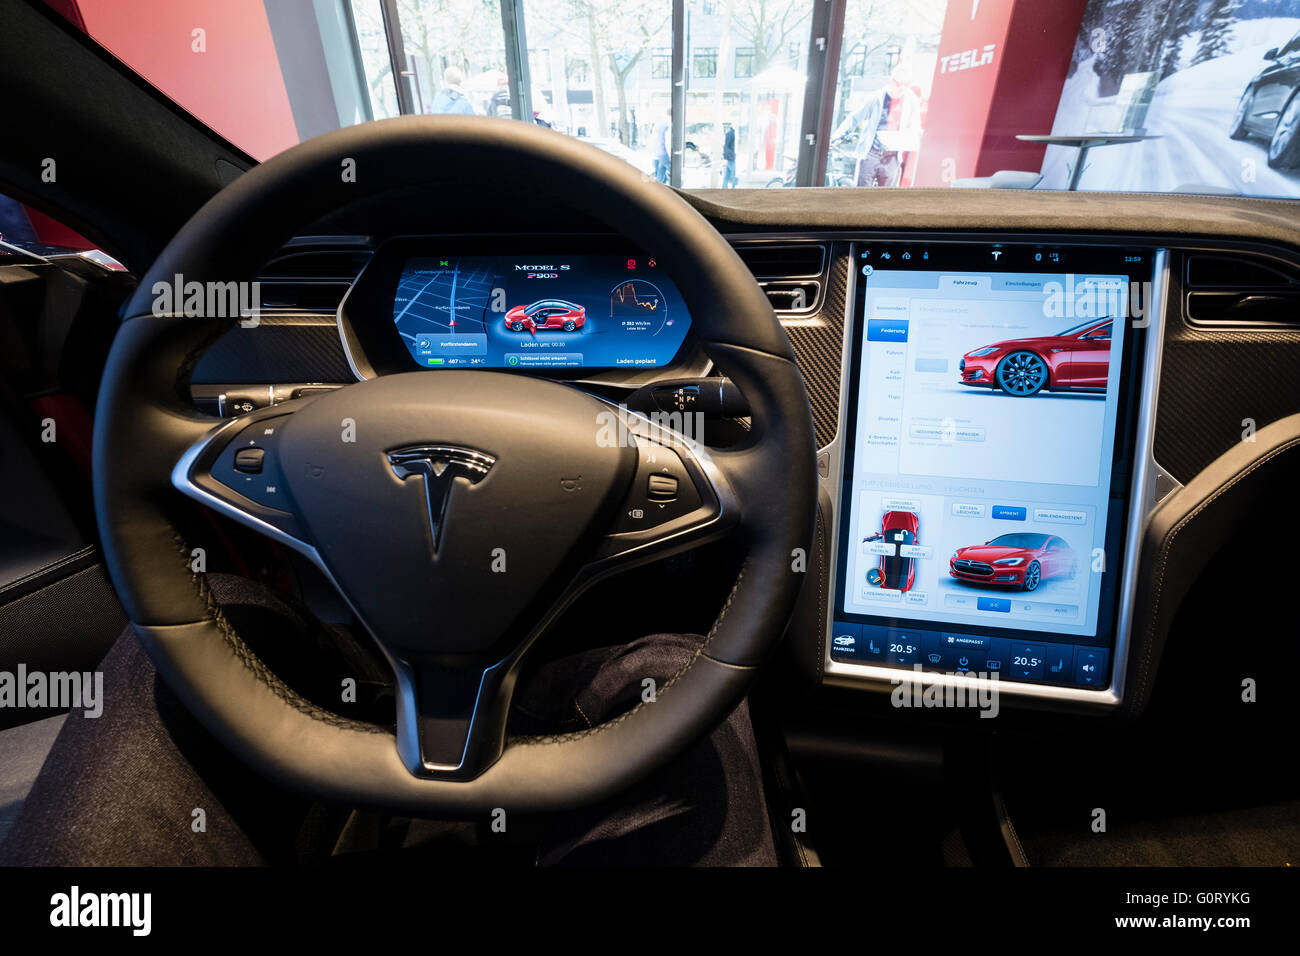 Digital Dashboard On Model S Car Inside Tesla Electric Car